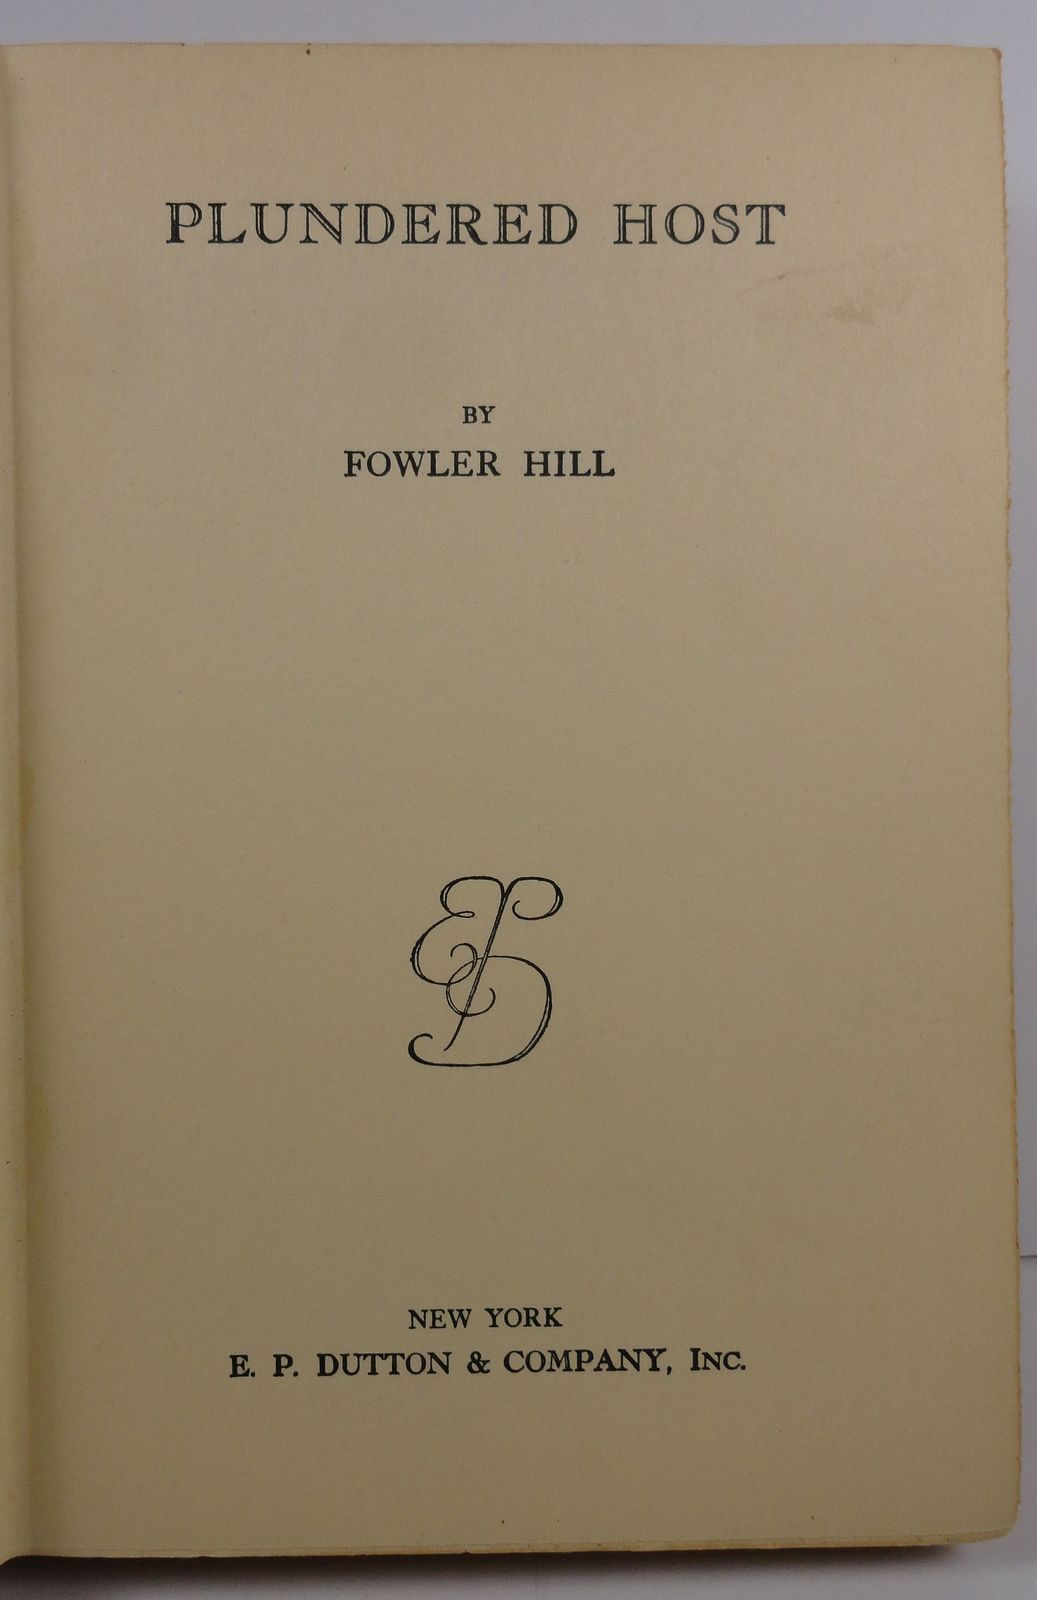 Plundered Host by Fowler Hill 1929 Third Printing